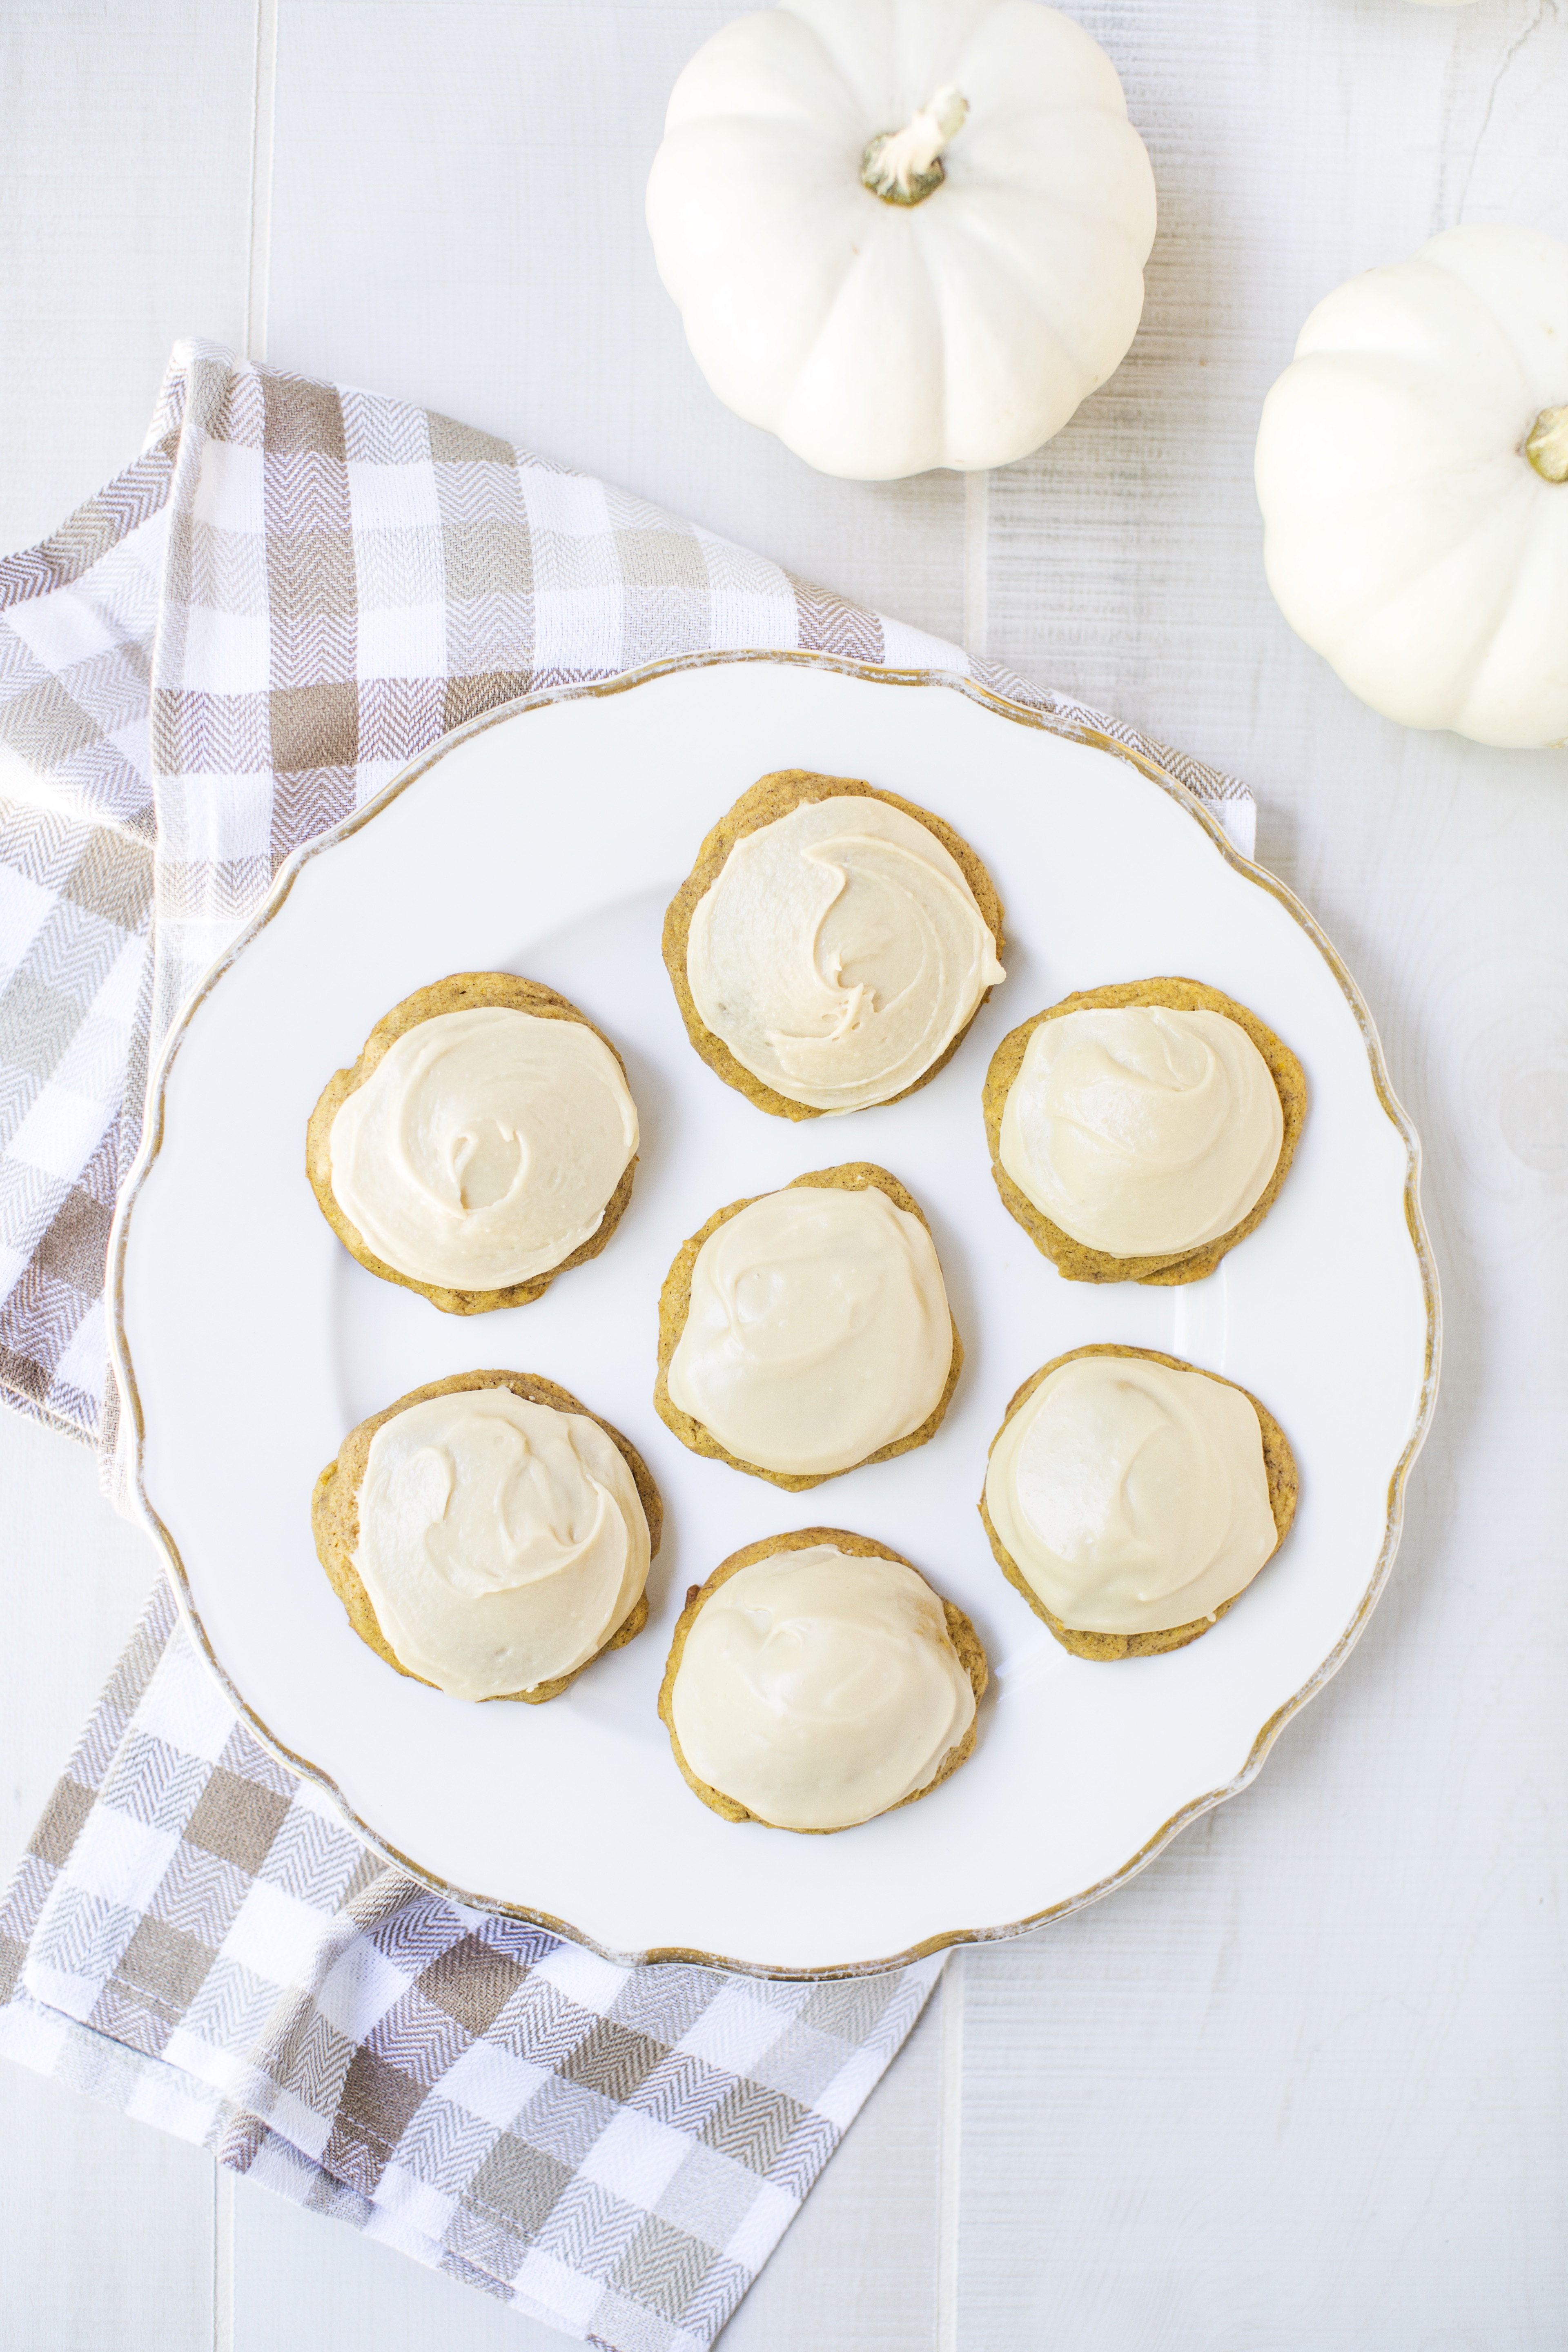 Caramel Frosted Pumpkin Cookies from I Heart Naptime's new cookbook via @PagingSupermom